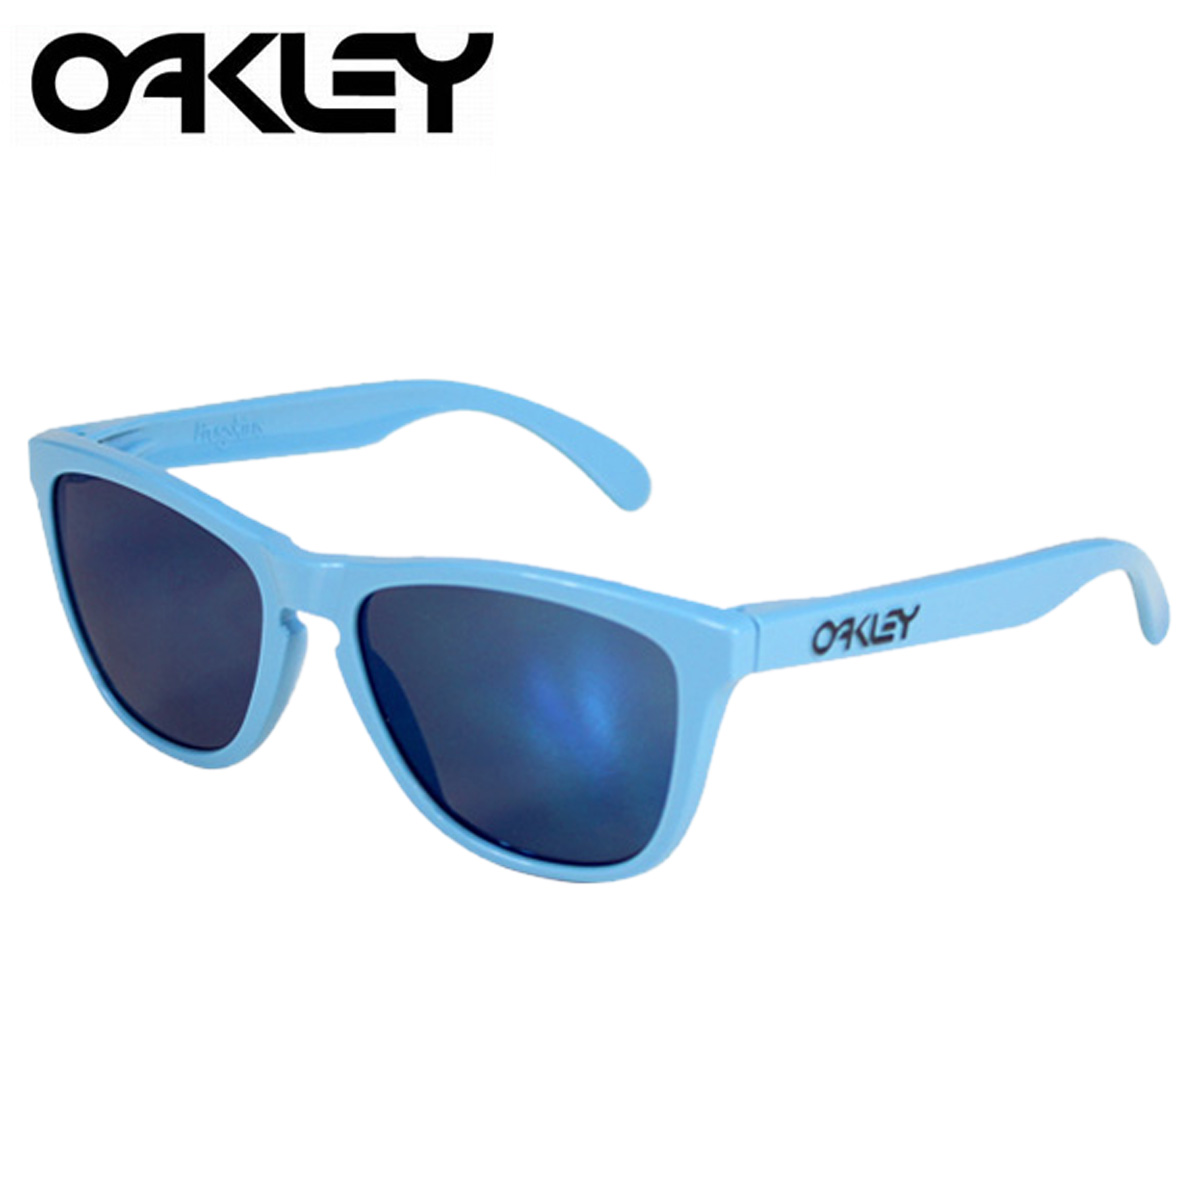 ff499107e1 ... wholesale allsports oakley oakley sunglasses frogskins special edition  heritage frog skin mens womens glasses special edition